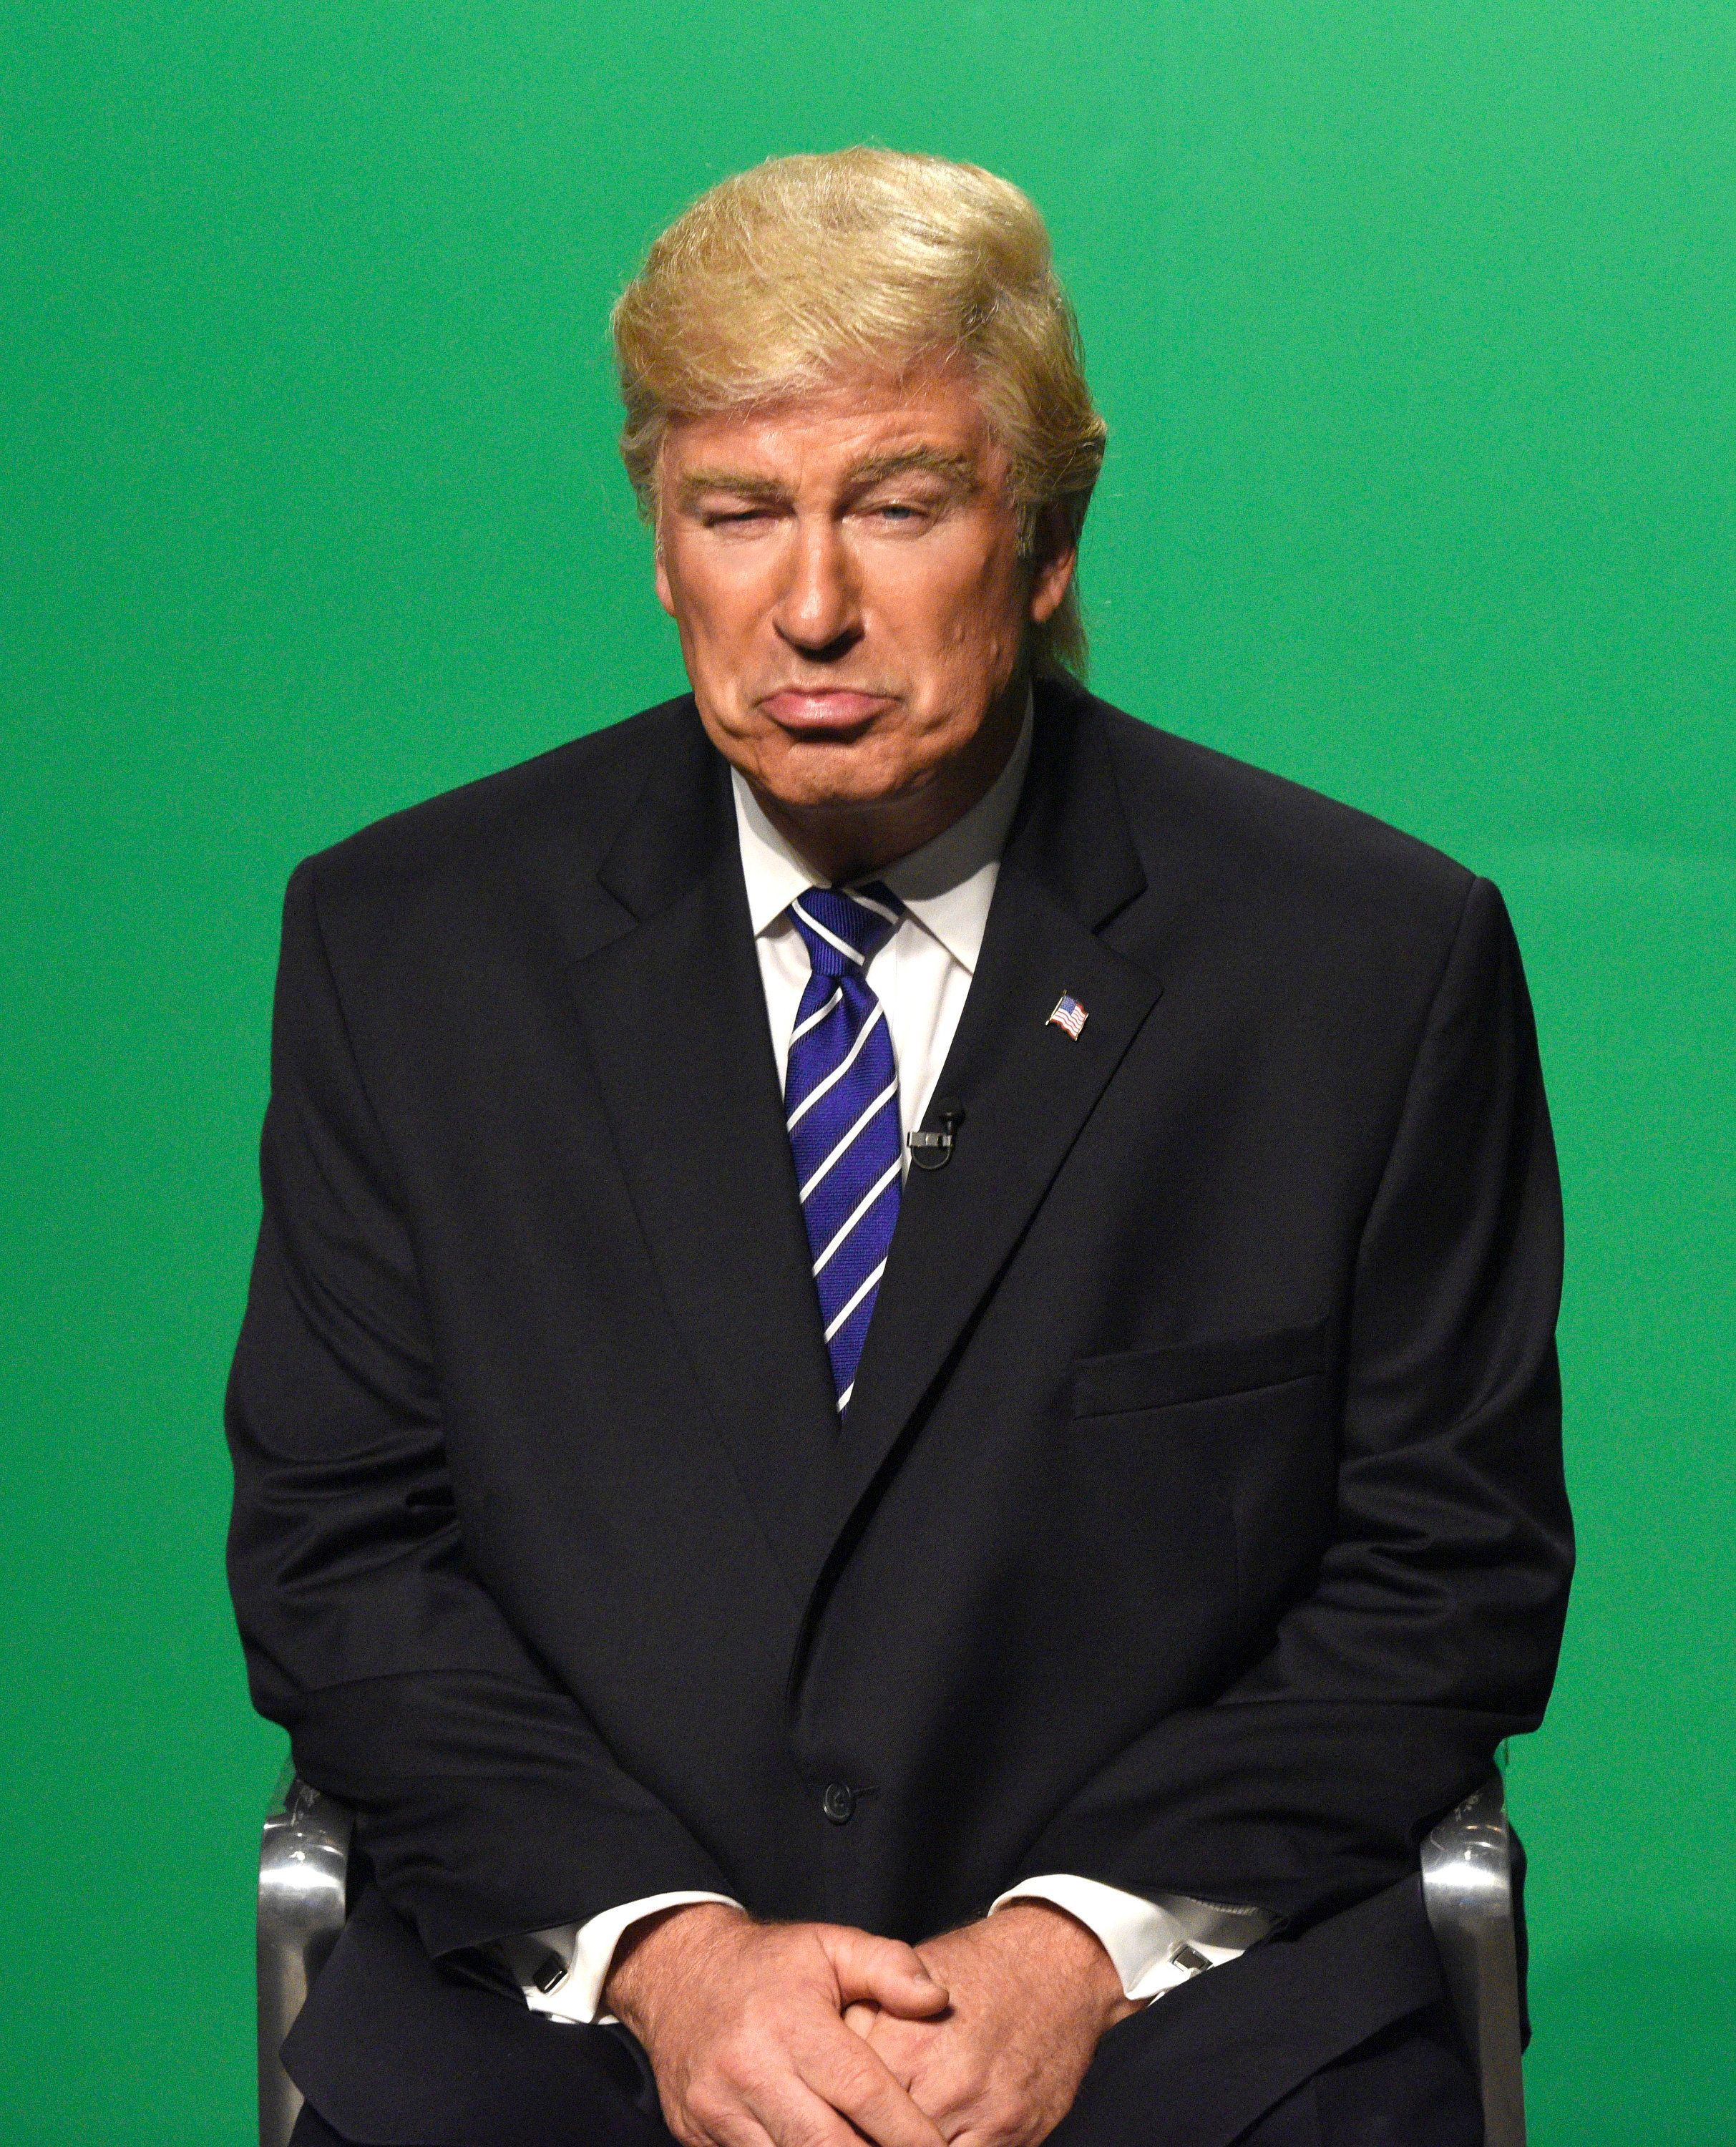 Alec Baldwin Says NBC Didn't Let 'SNL' Endorse A